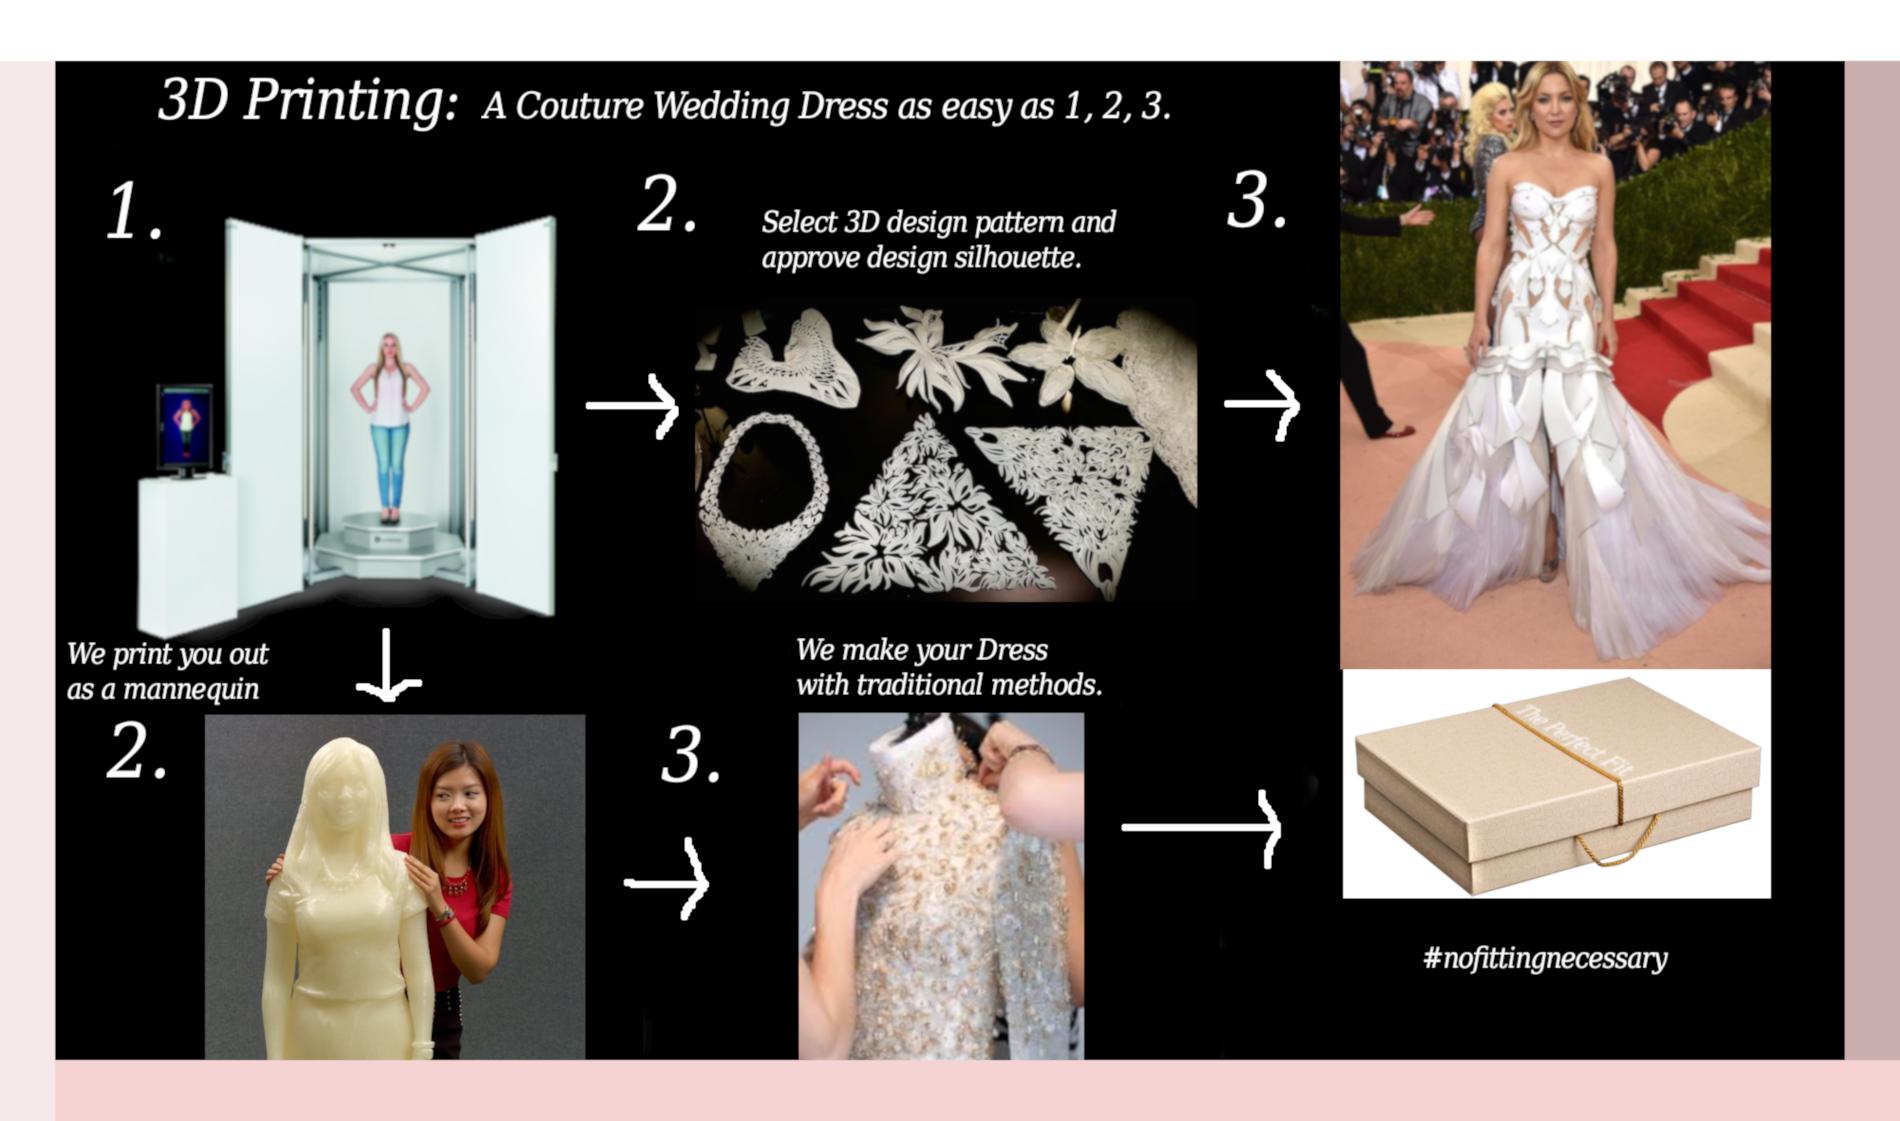 3D Printing Haute Couture Wedding Gown Flow Chart demonstrates how easy it now is for a client that can now be serviced anywhere on earth with no fittings needed. This is innovation.